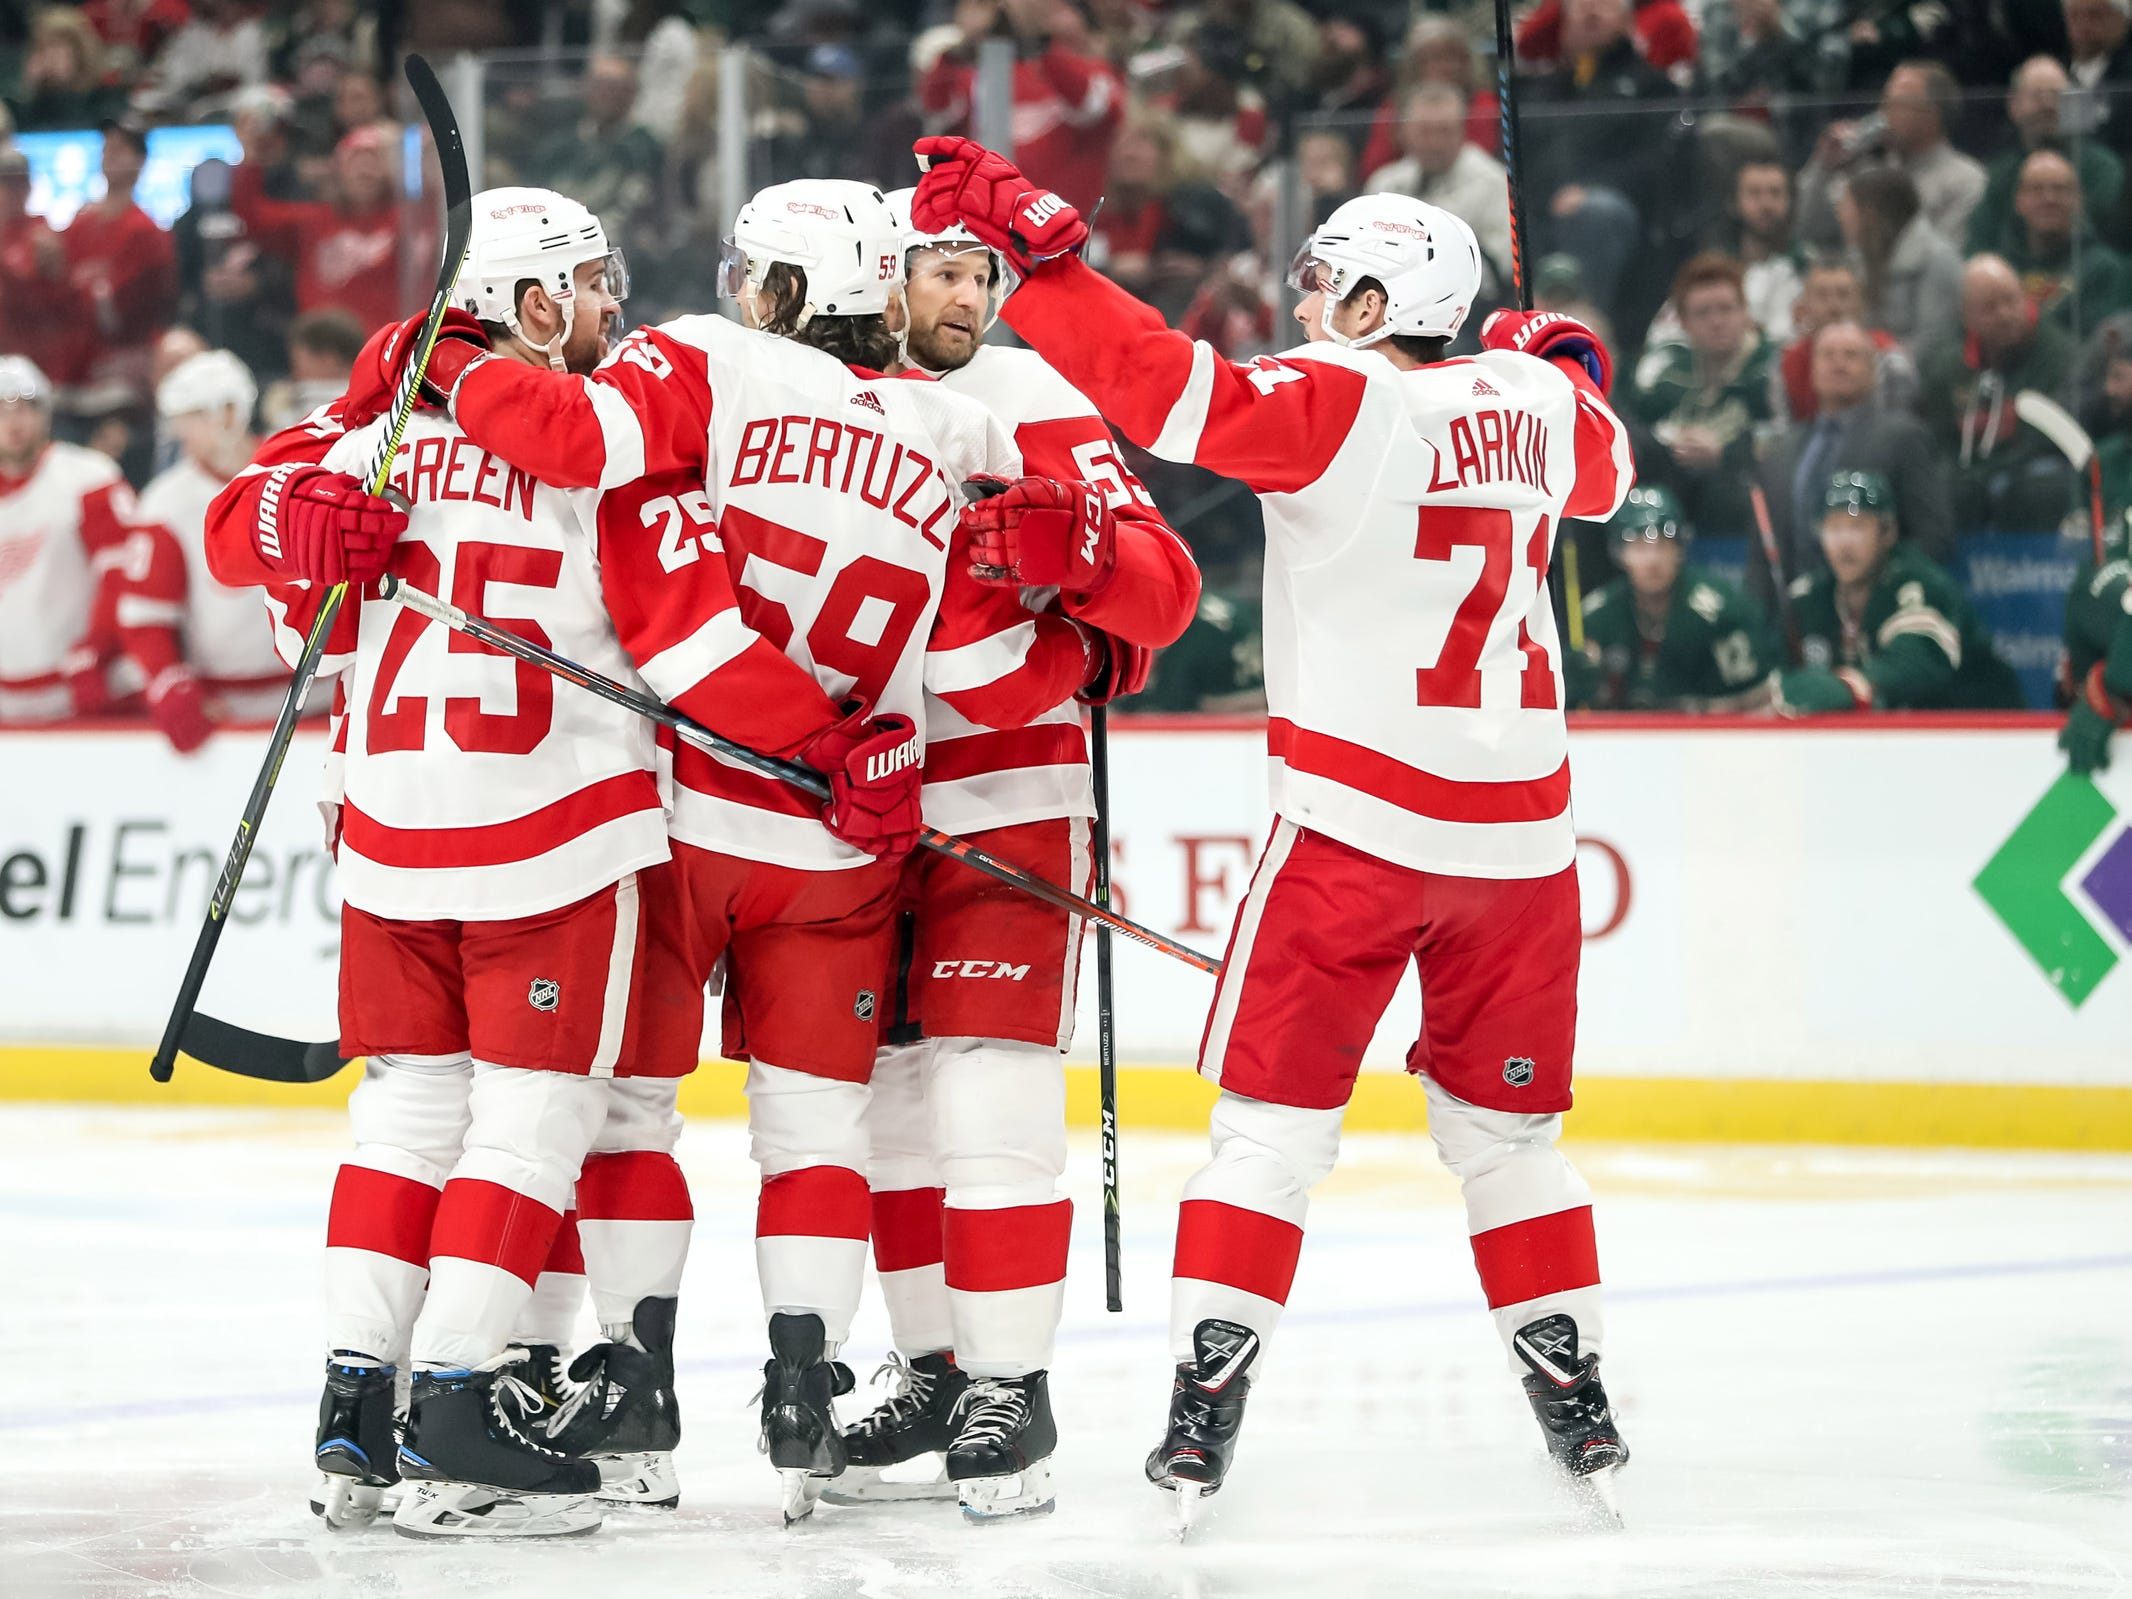 Detroit Red Wings forward Tyler Bertuzzi celebrates his goal with teammates during the first period against the Minnesota Wild at Xcel Energy Center, Saturday, Jan. 12, 2019, in St. Paul, Minn.